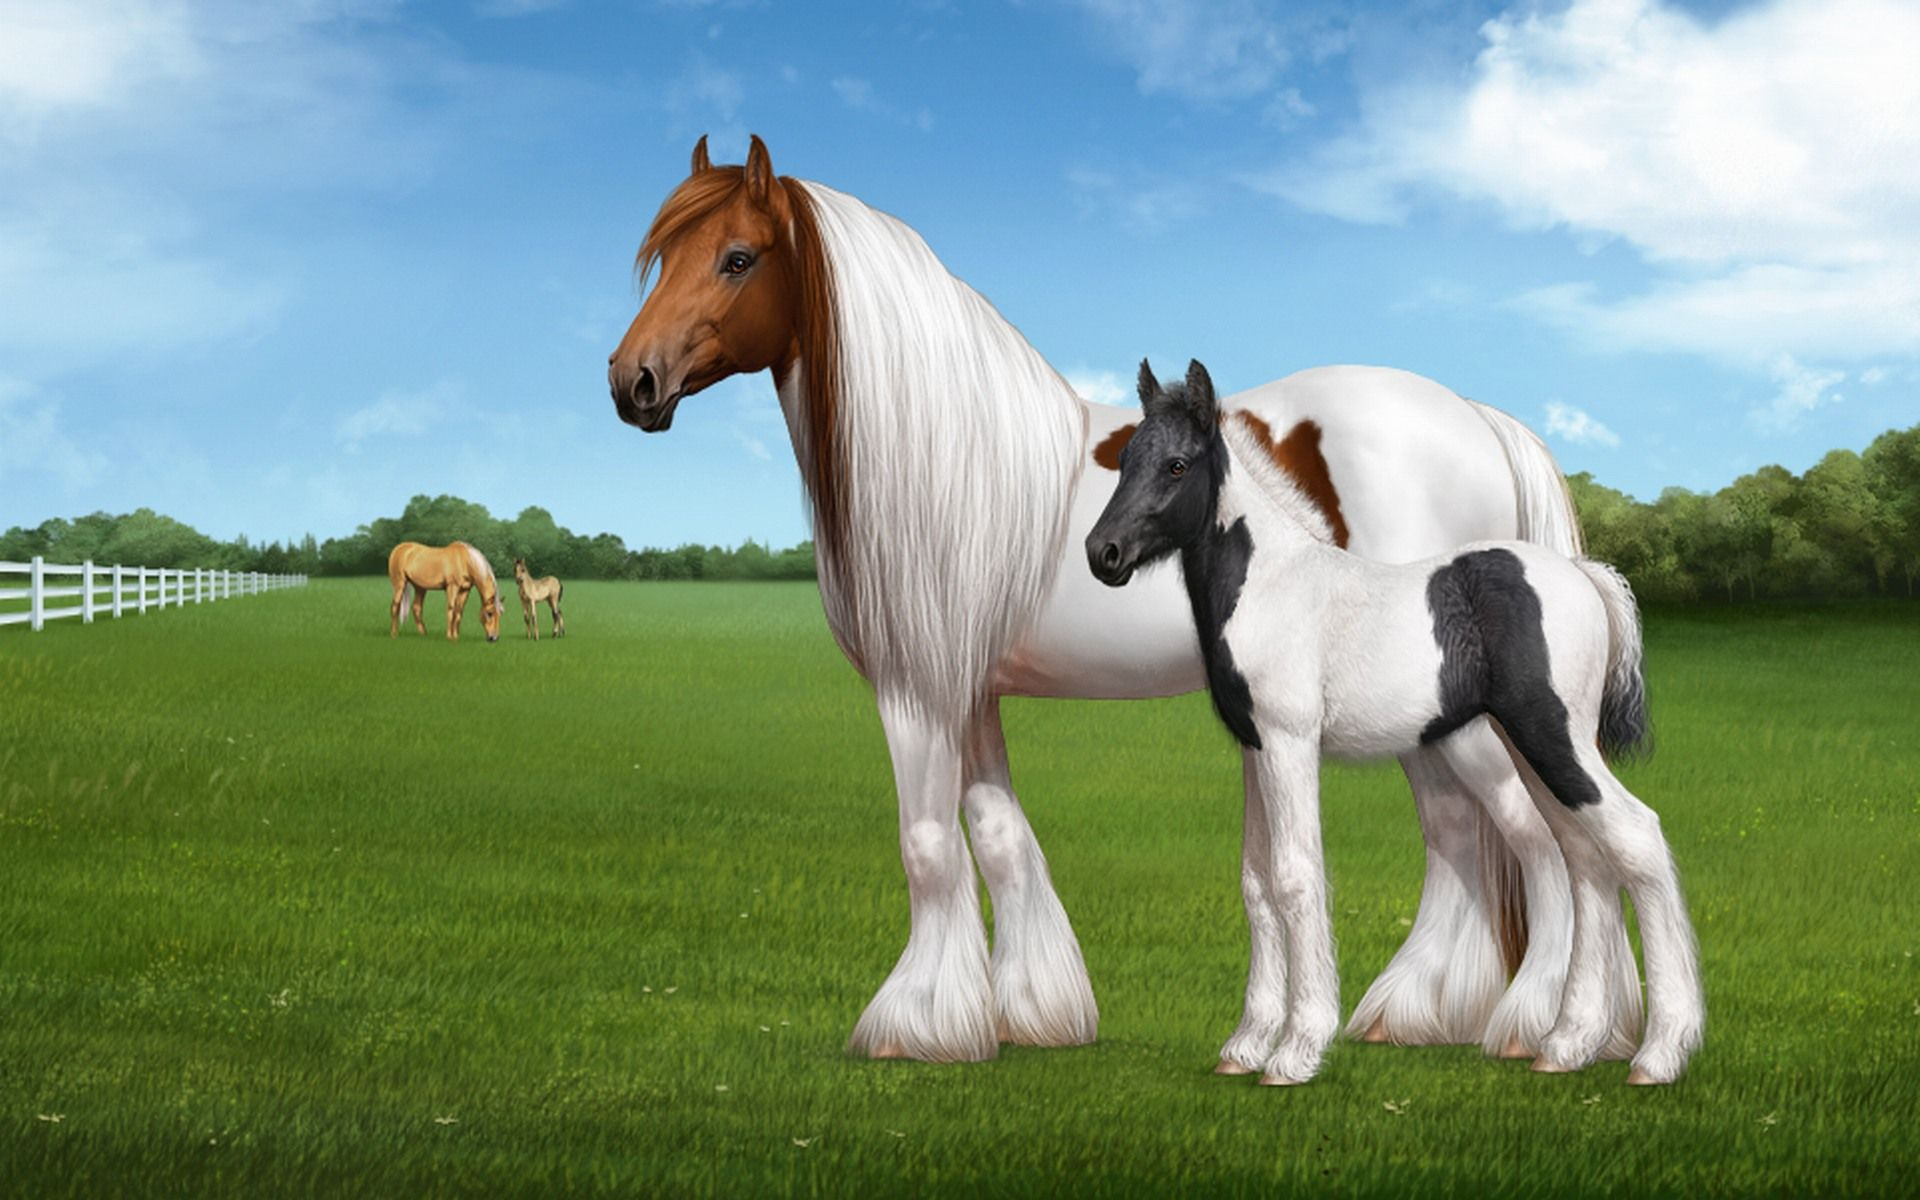 explore free horses wild horses and more youwall white horse wallpaper wallpaperwallpapersfree